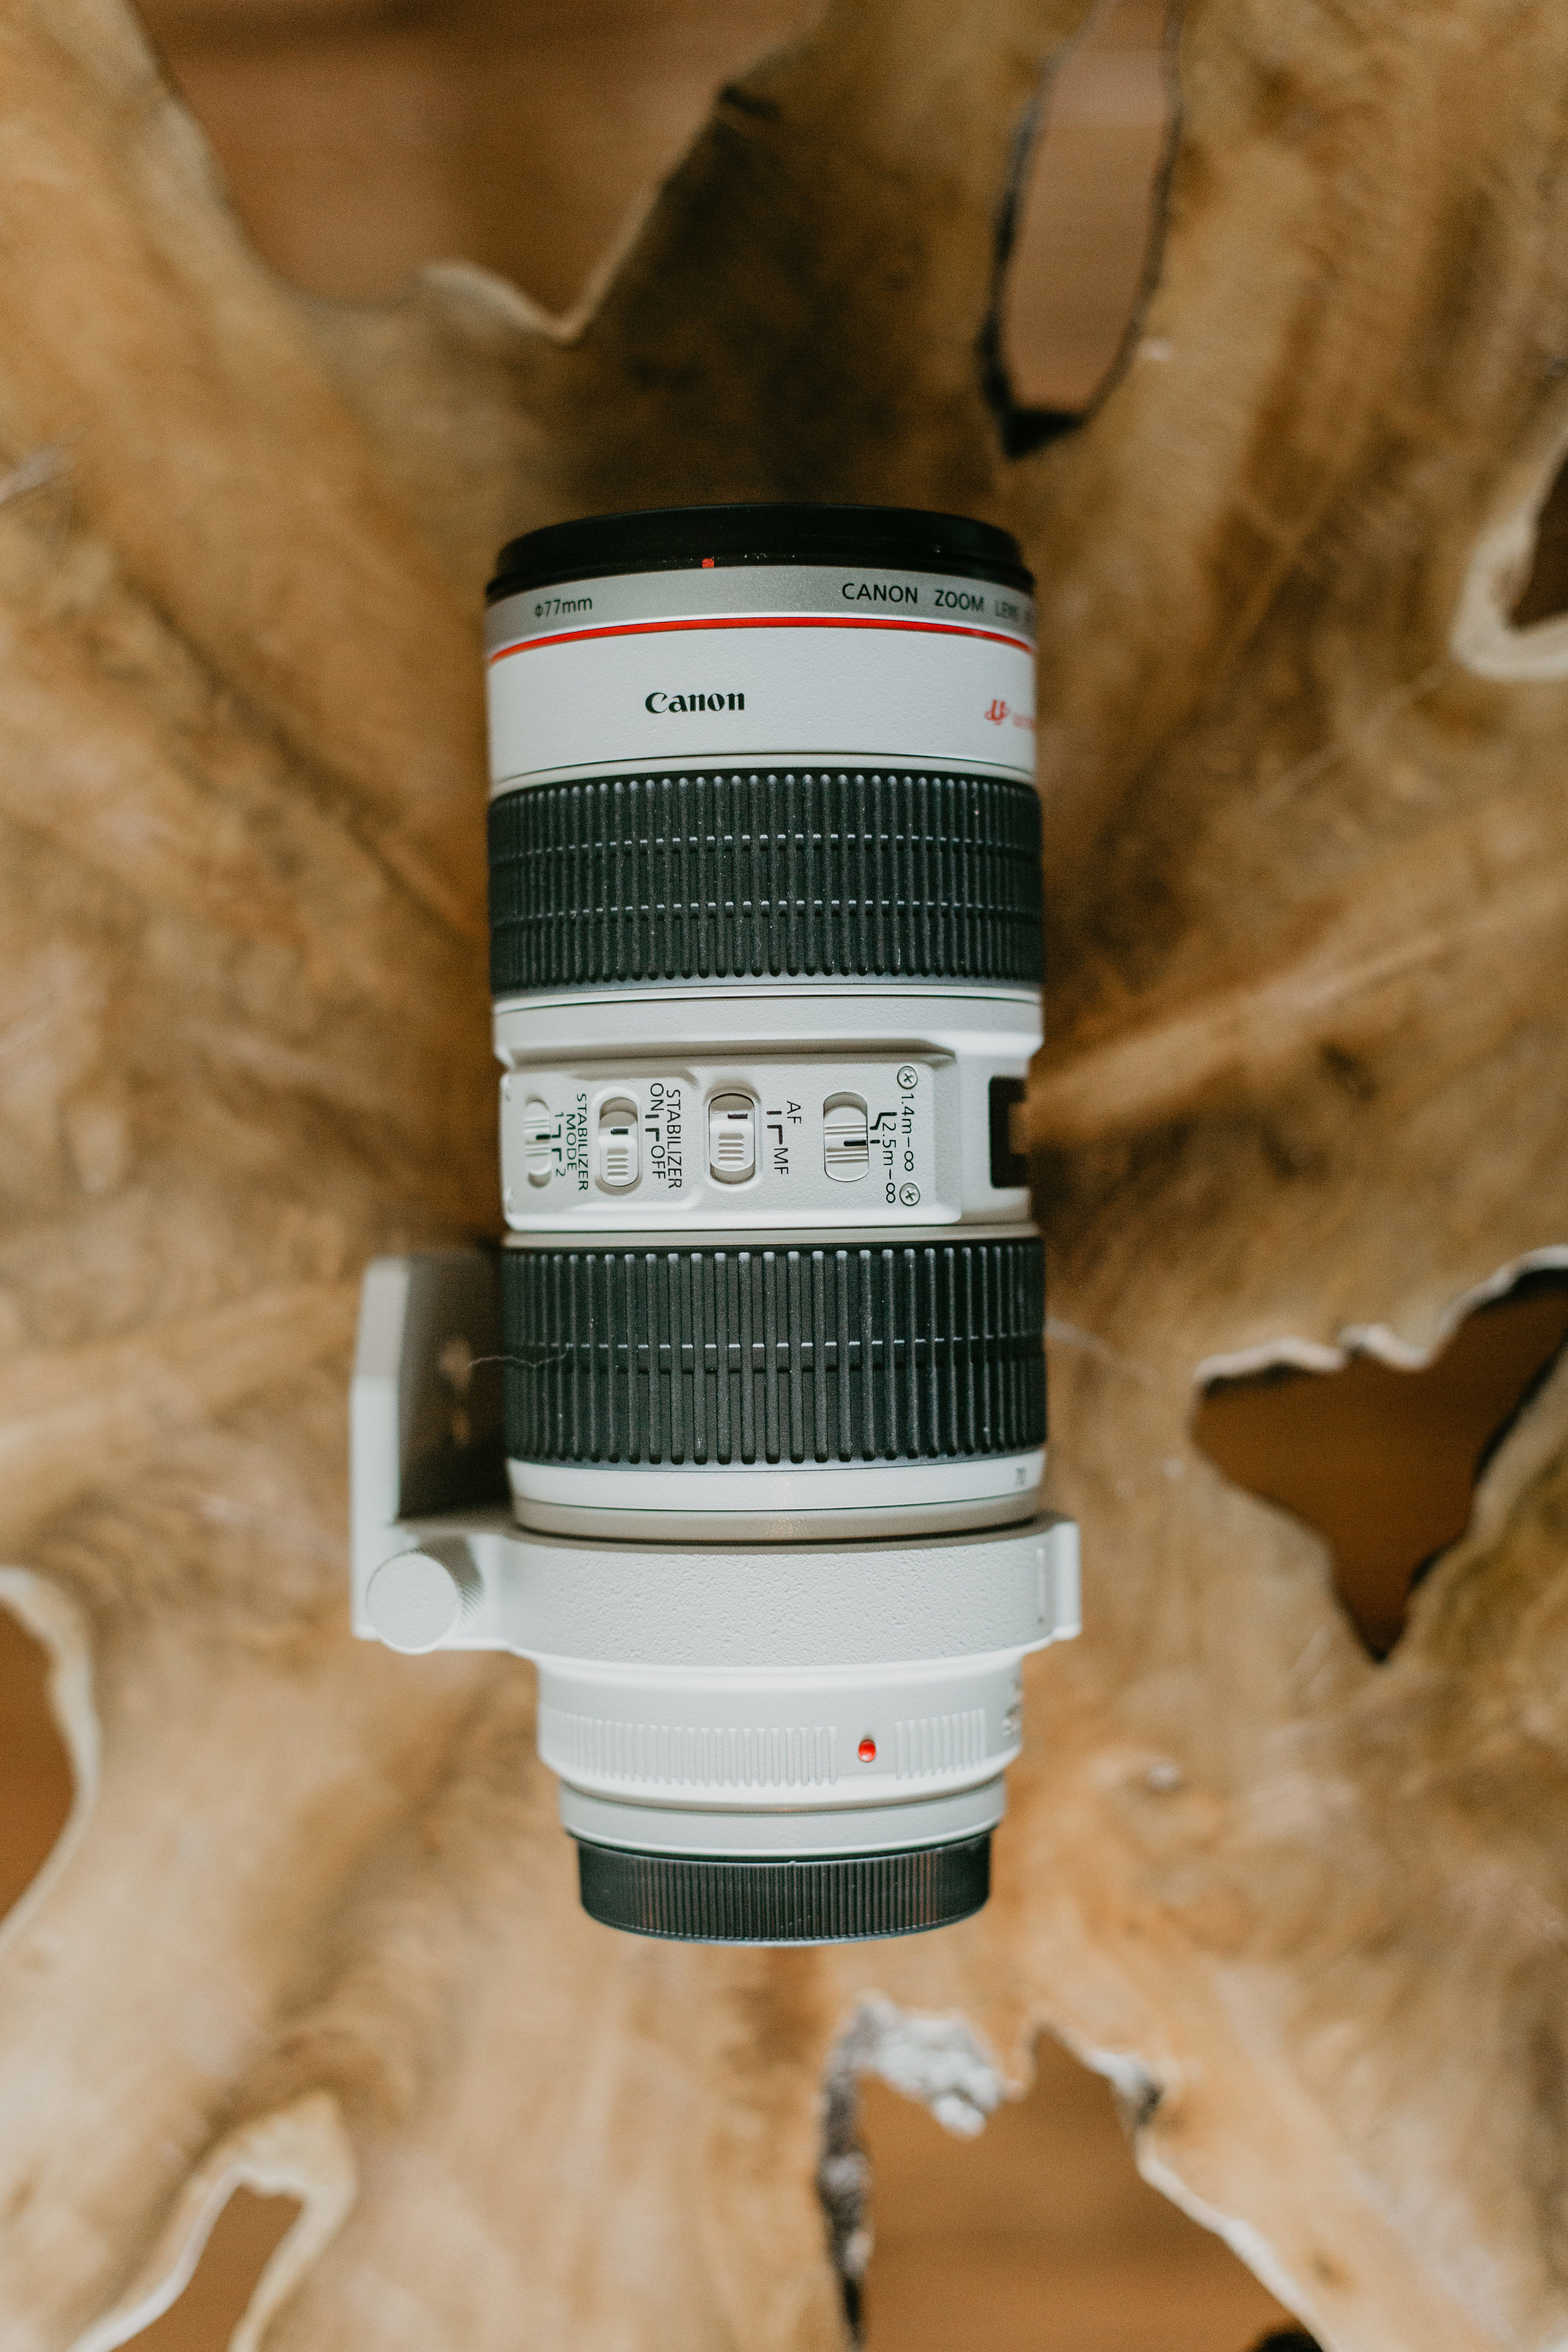 Nicole-daacke-photography-recommended gear-2.jpg